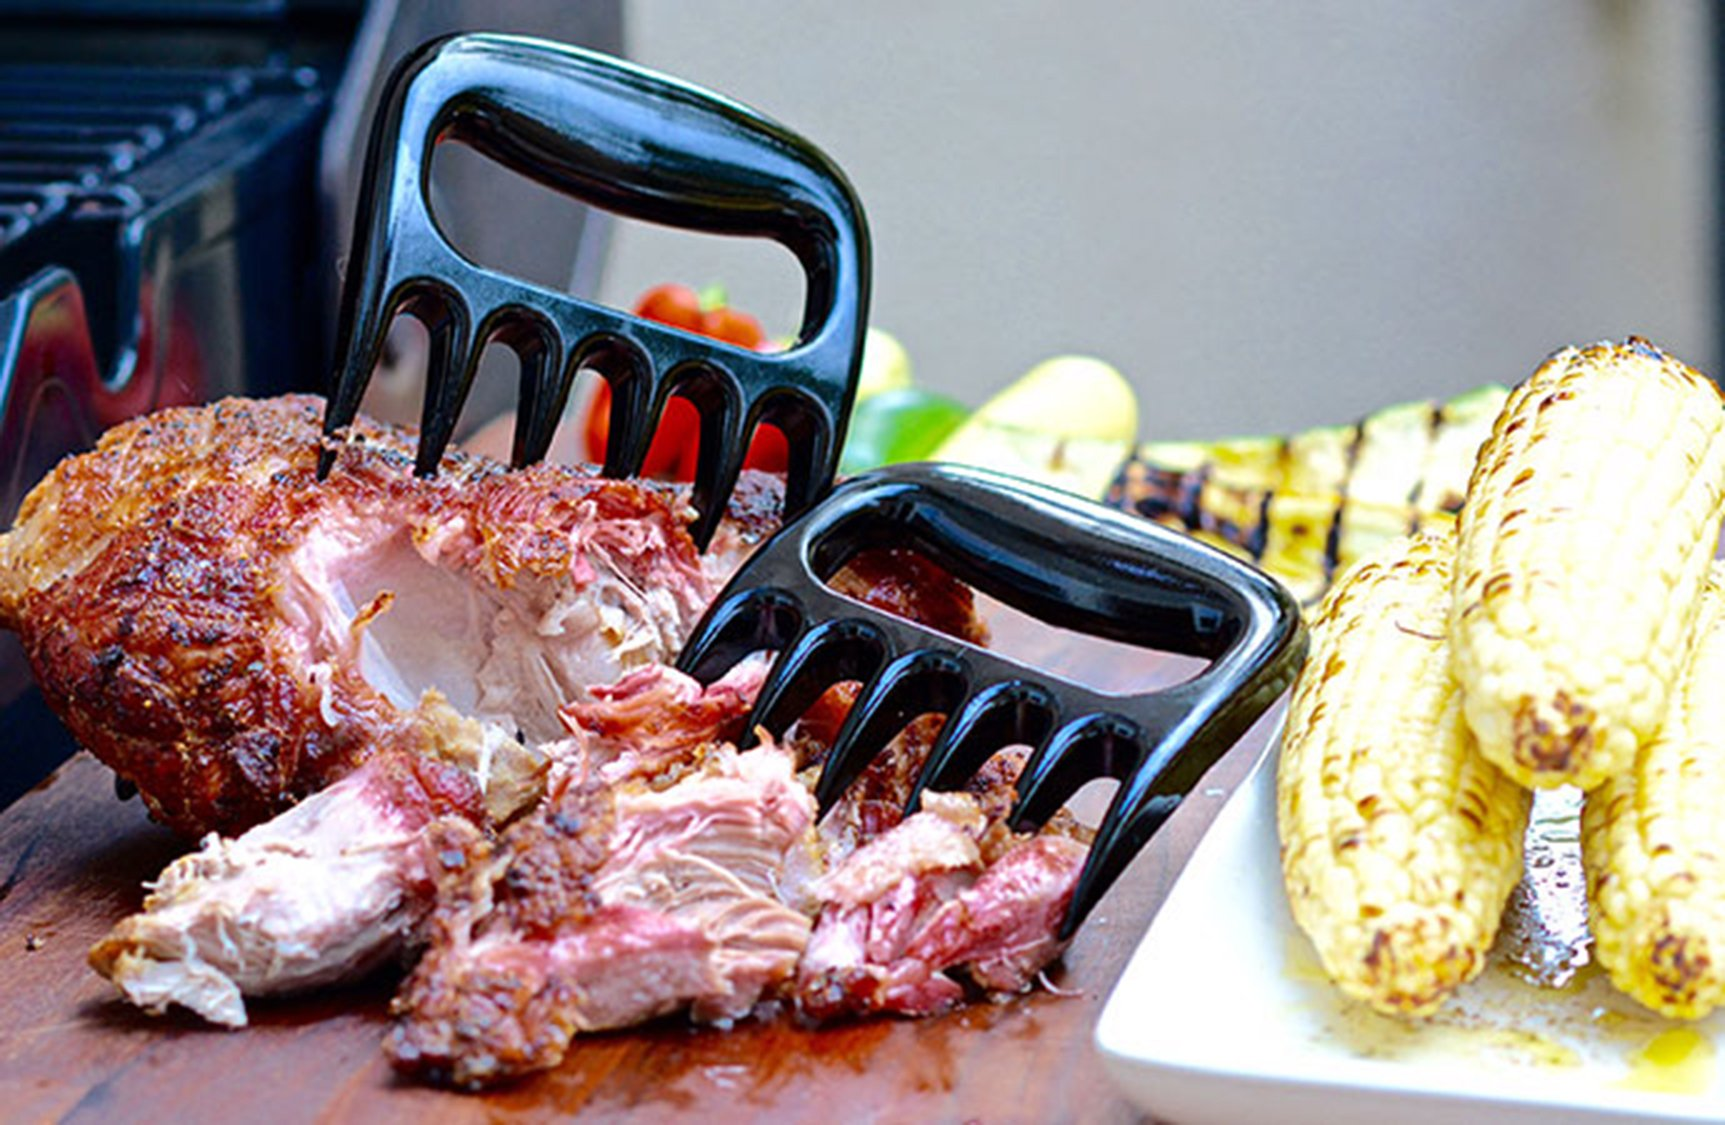 MEAT CLAWS Pulled Pork Shredder - For Perfectly Shredded Meat, These Are The Bear Claws You Need - Best Bear Claws Meat Shredder For BBQ, Smoker, Grill - Shred Your Meat, Don't Burn Your Hands!(Set of by Eohak (Image #6)